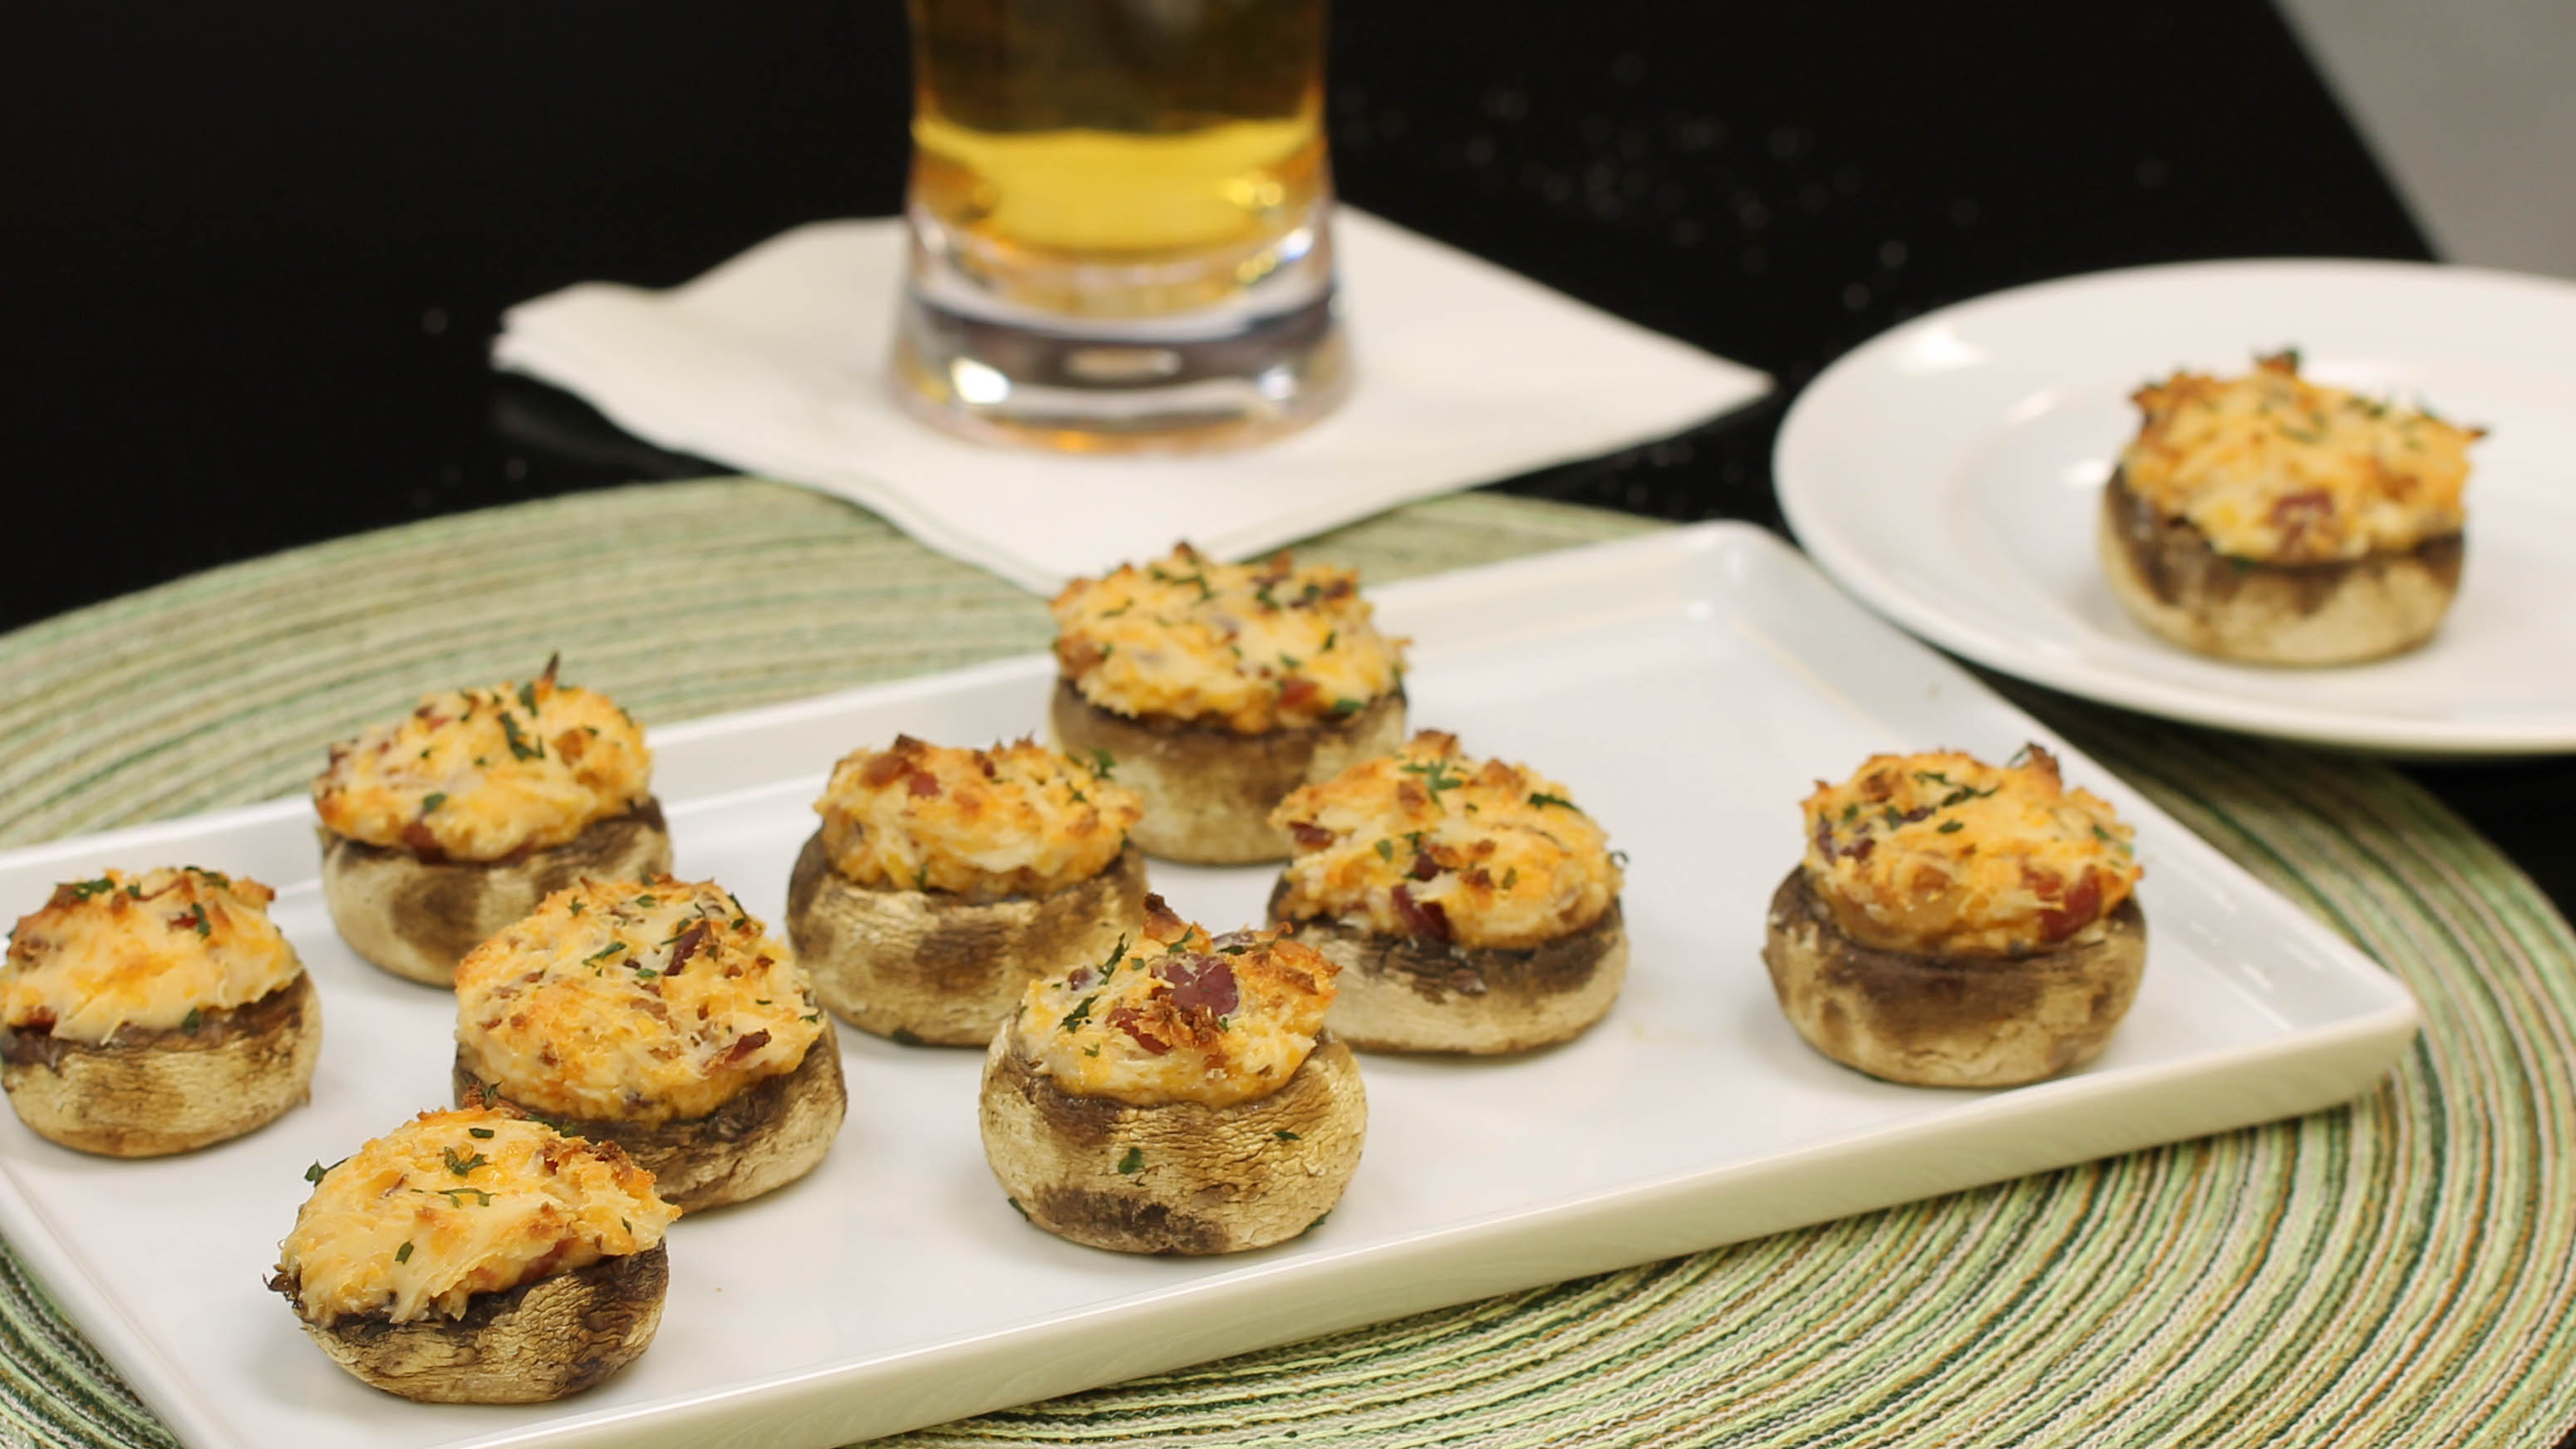 Cheesy Bacon Stuffed Mushrooms